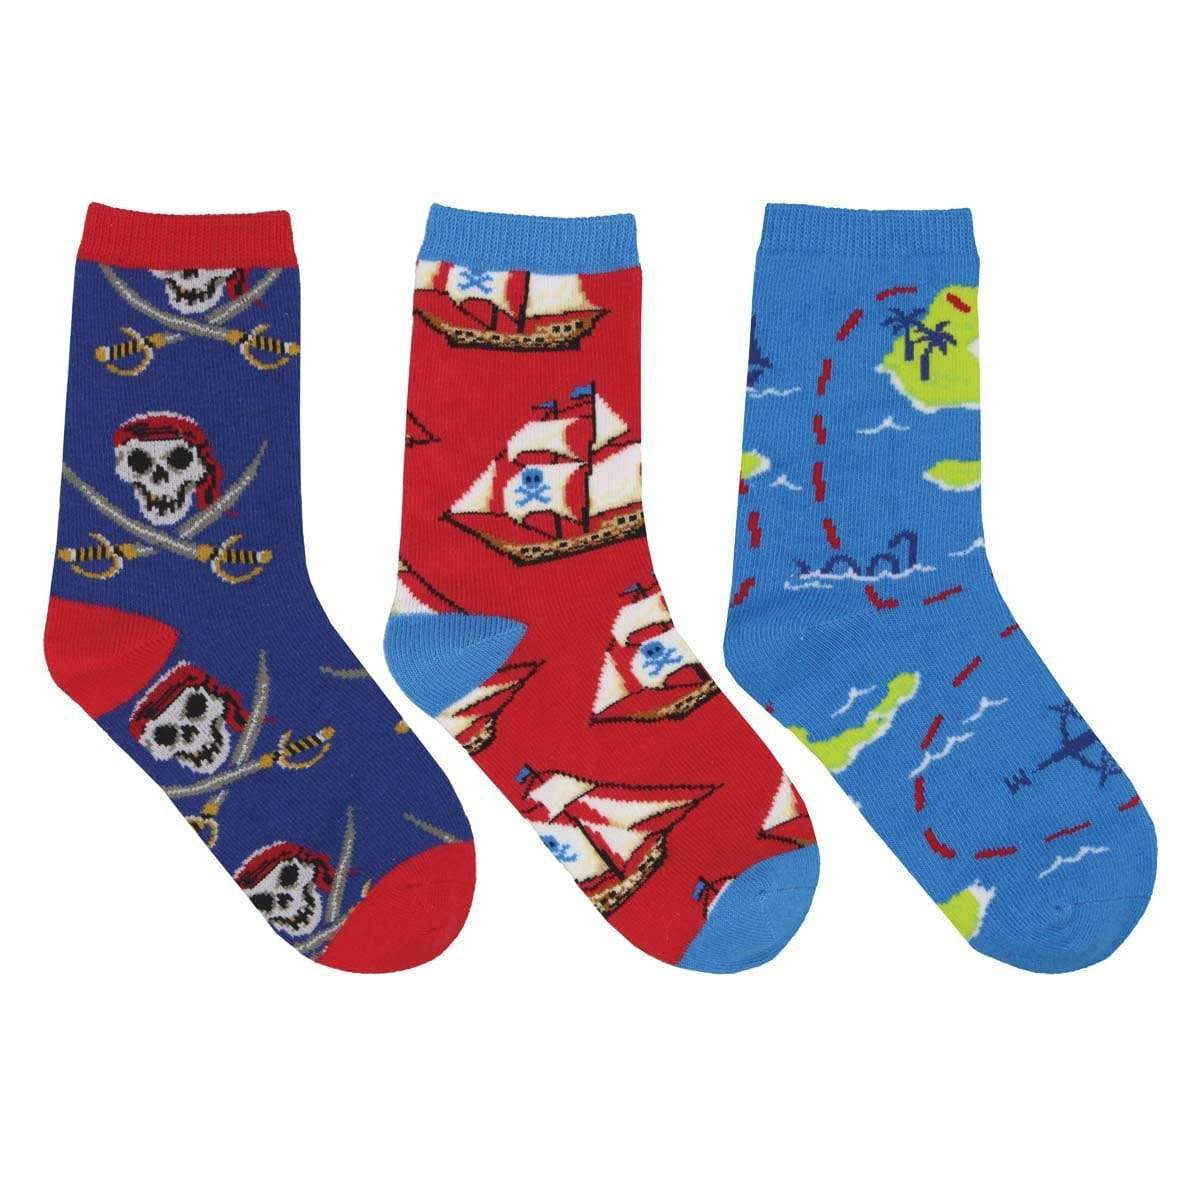 A Pirate's Life Crew Sock 3 Pack